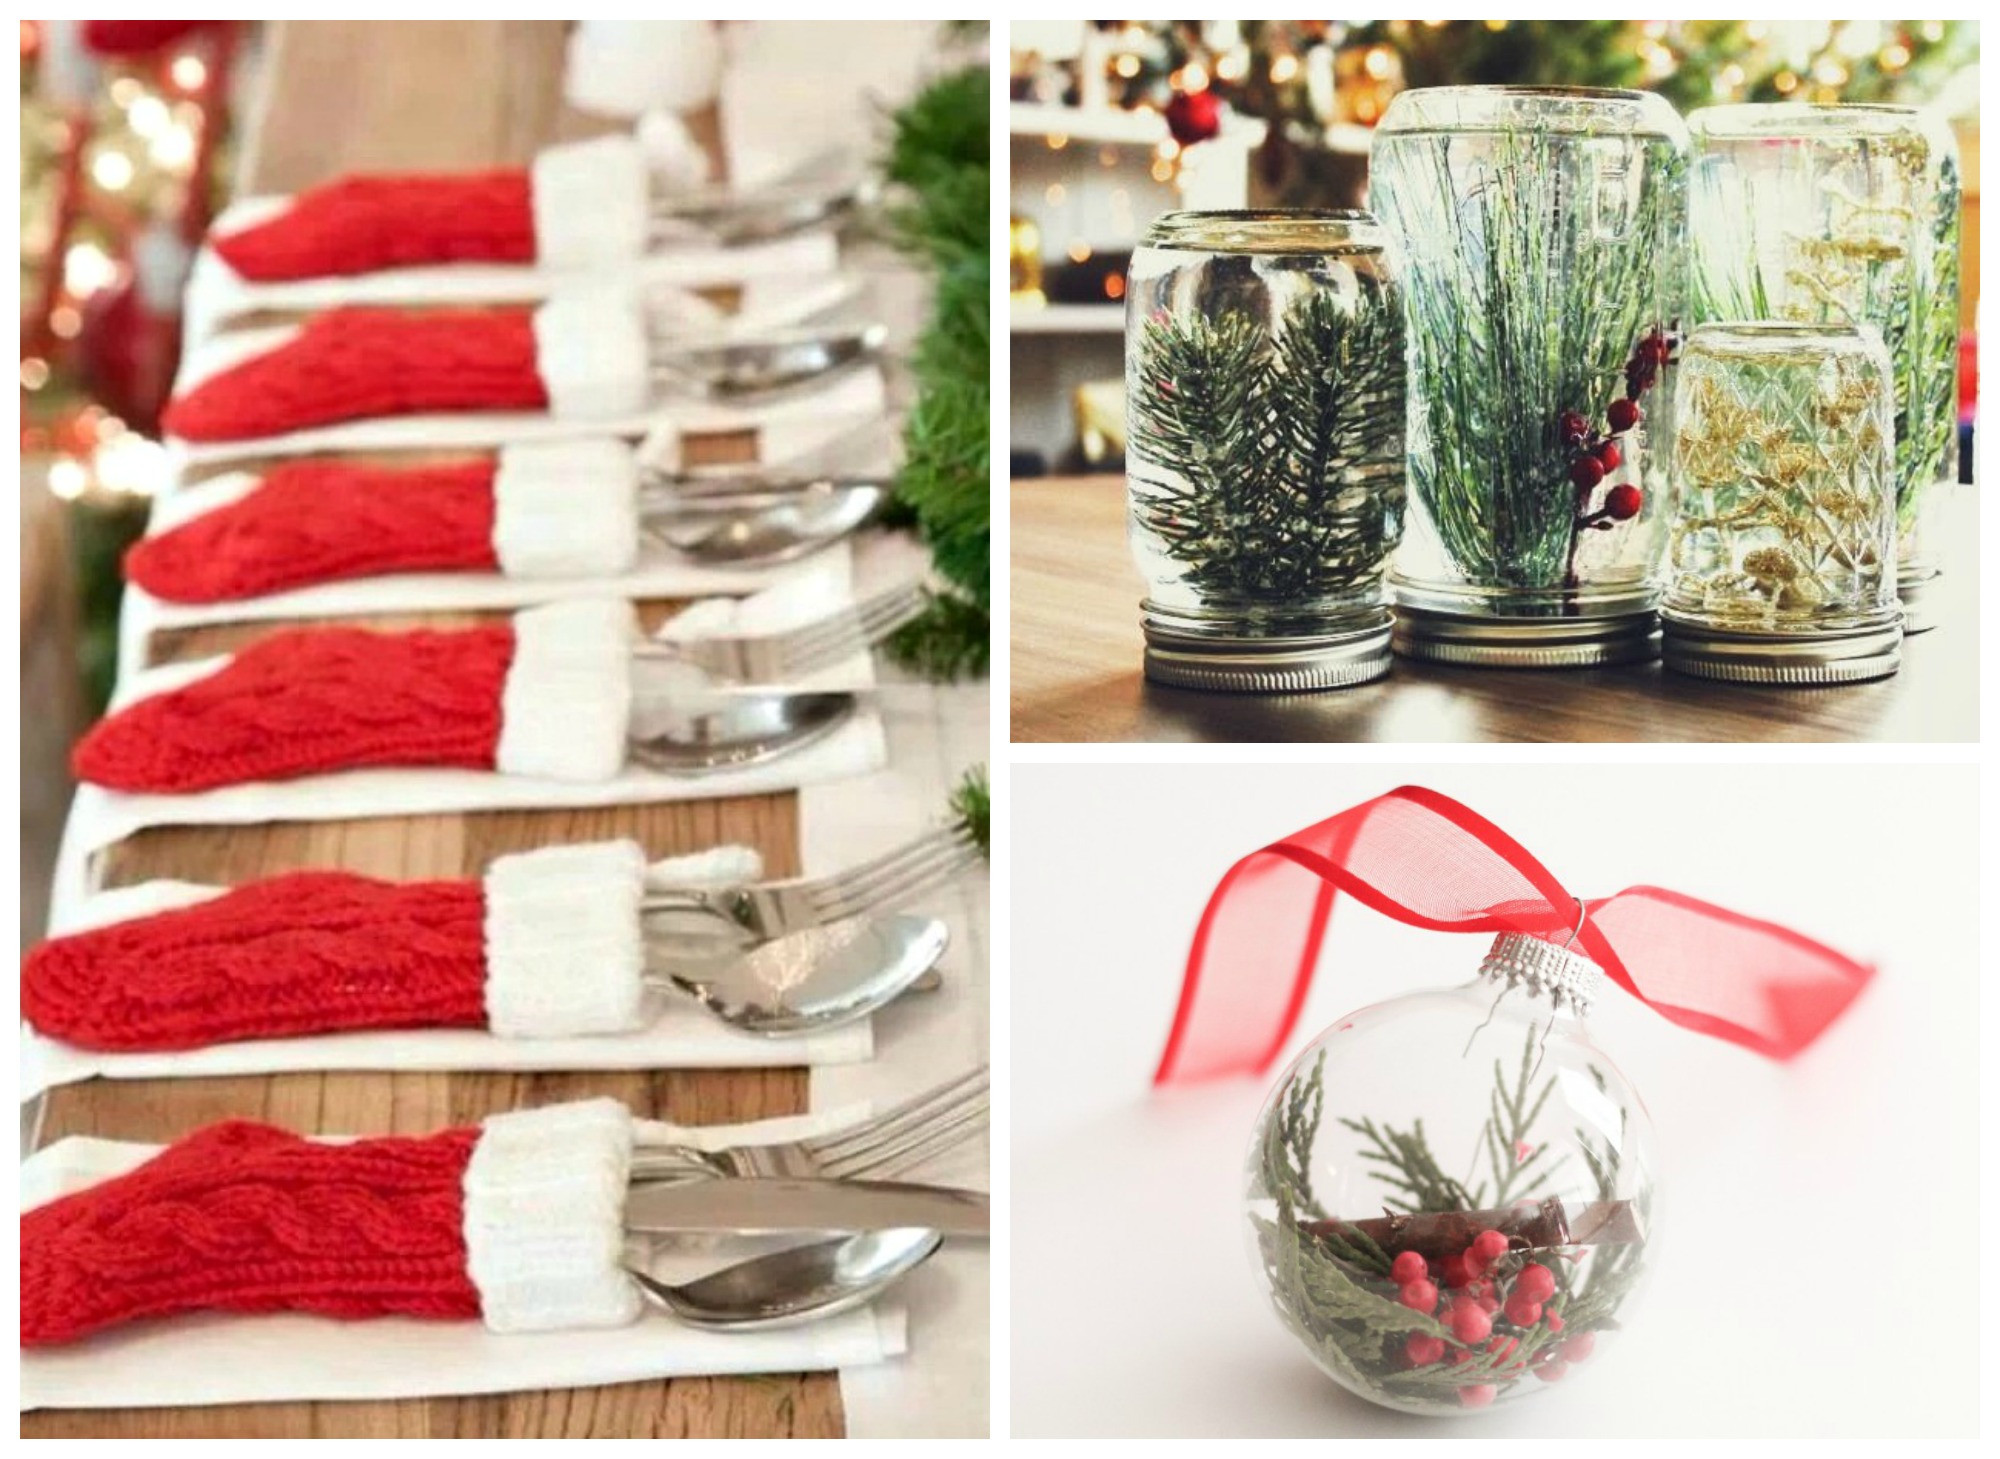 Best ideas about Christmas DIY Decorations . Save or Pin 10 Dollar Store DIY Christmas Decorations that are Beyond Easy Now.